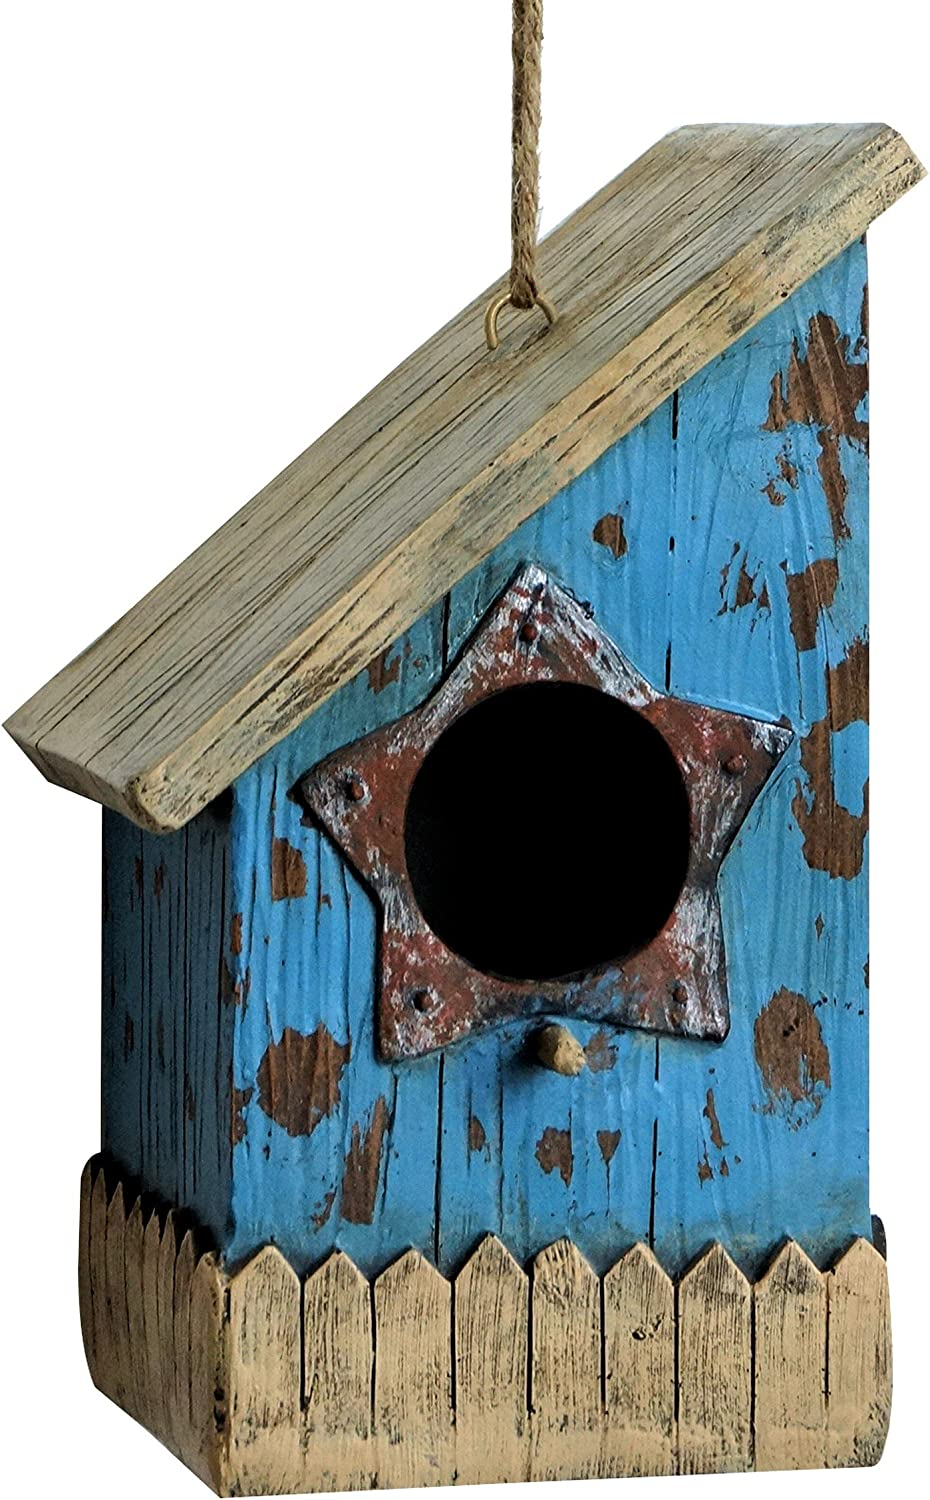 Harmony Fountains The Prairie House 9  Birdhouse  Rustic Bird House. HFBH001